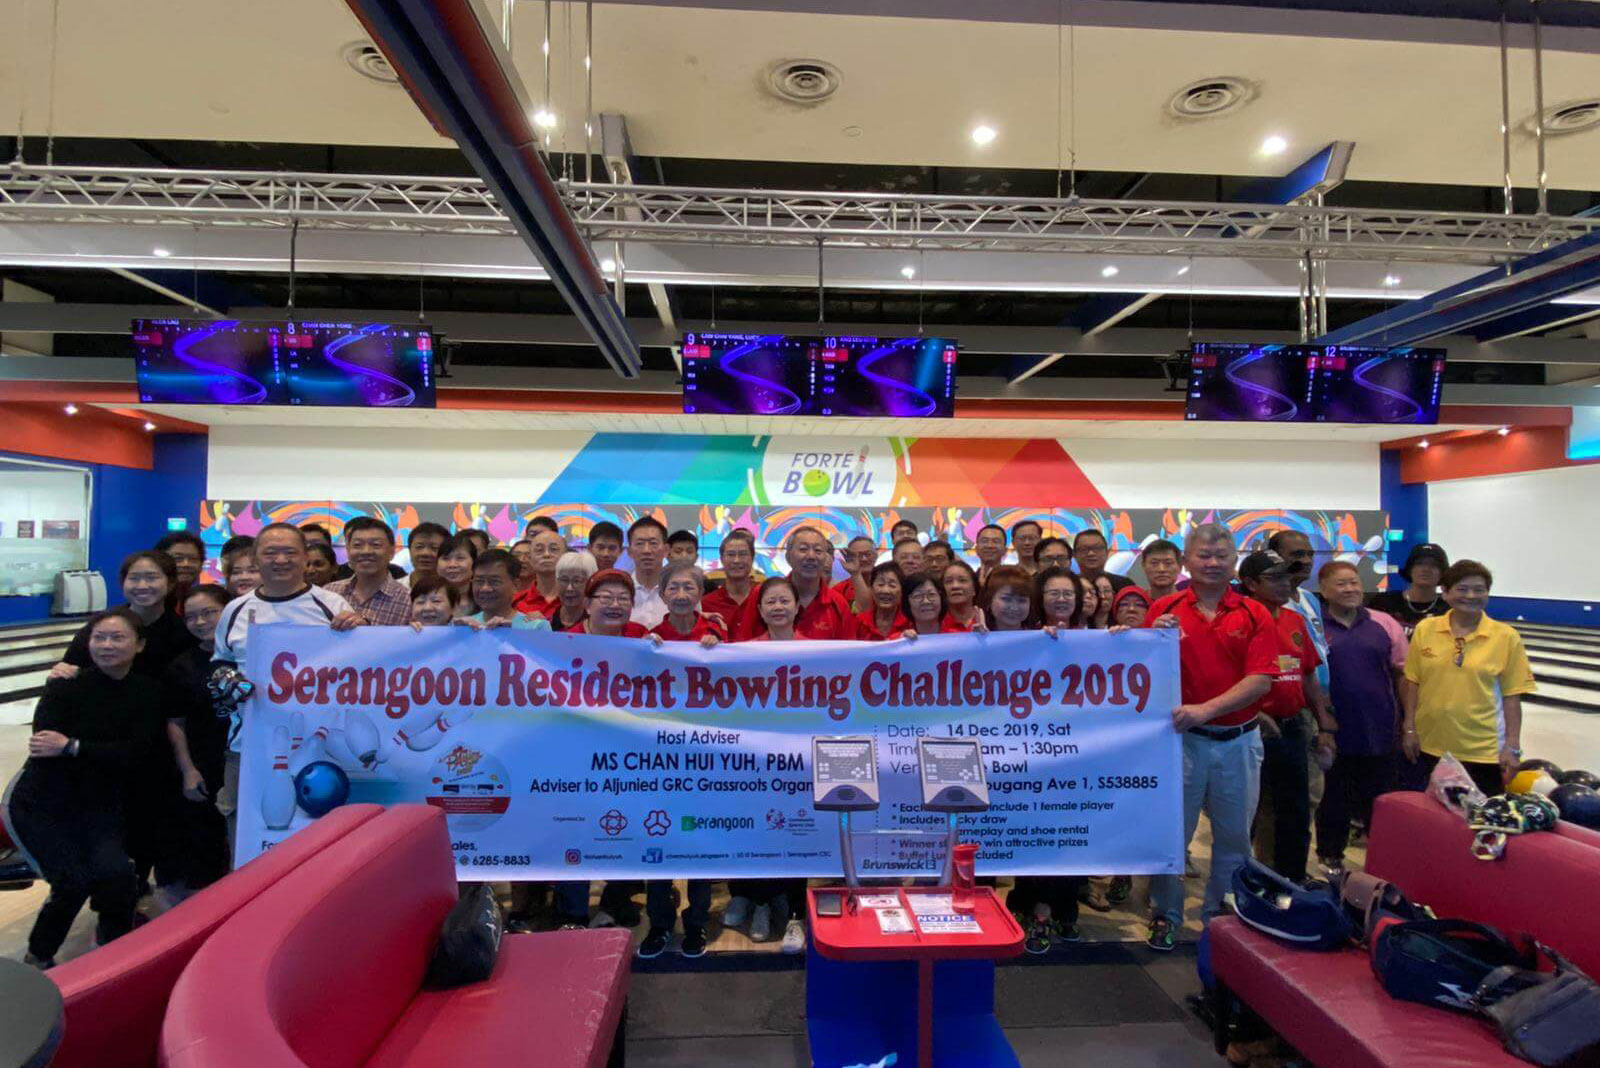 SERANGOON RESIDENTS BOWLING CHALLENGE 2019